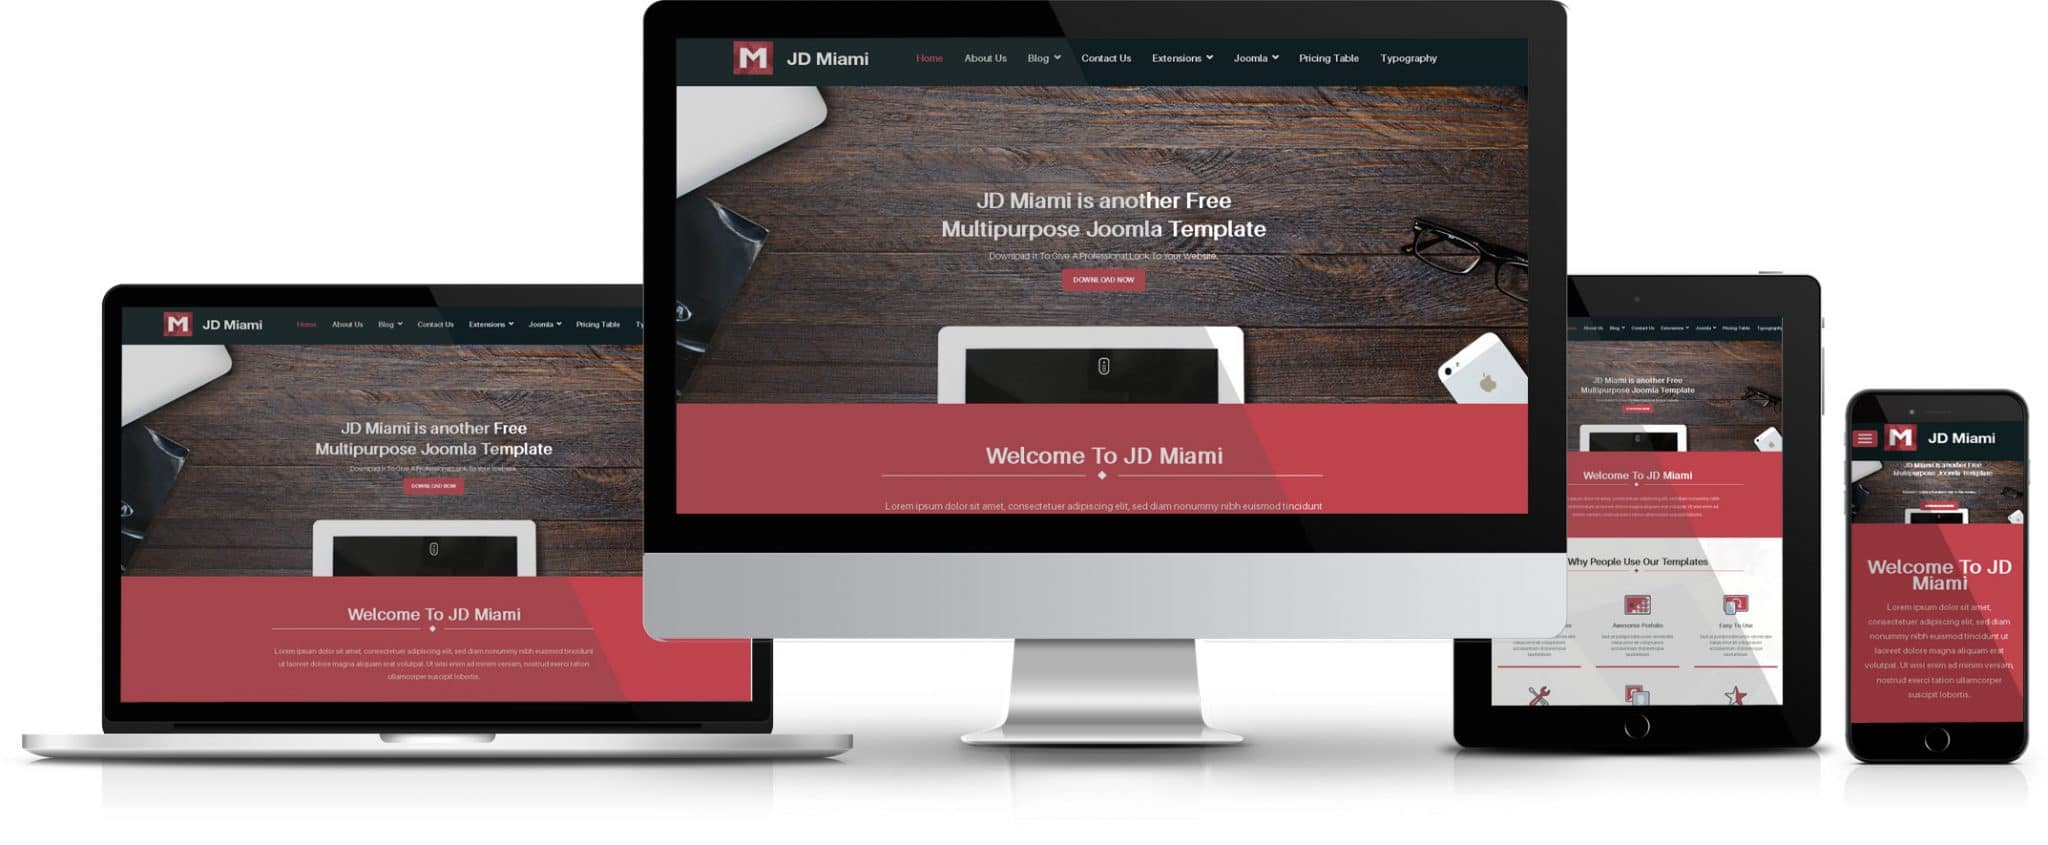 JD Miami - Joomla 3.6.5 Template, JD Miami